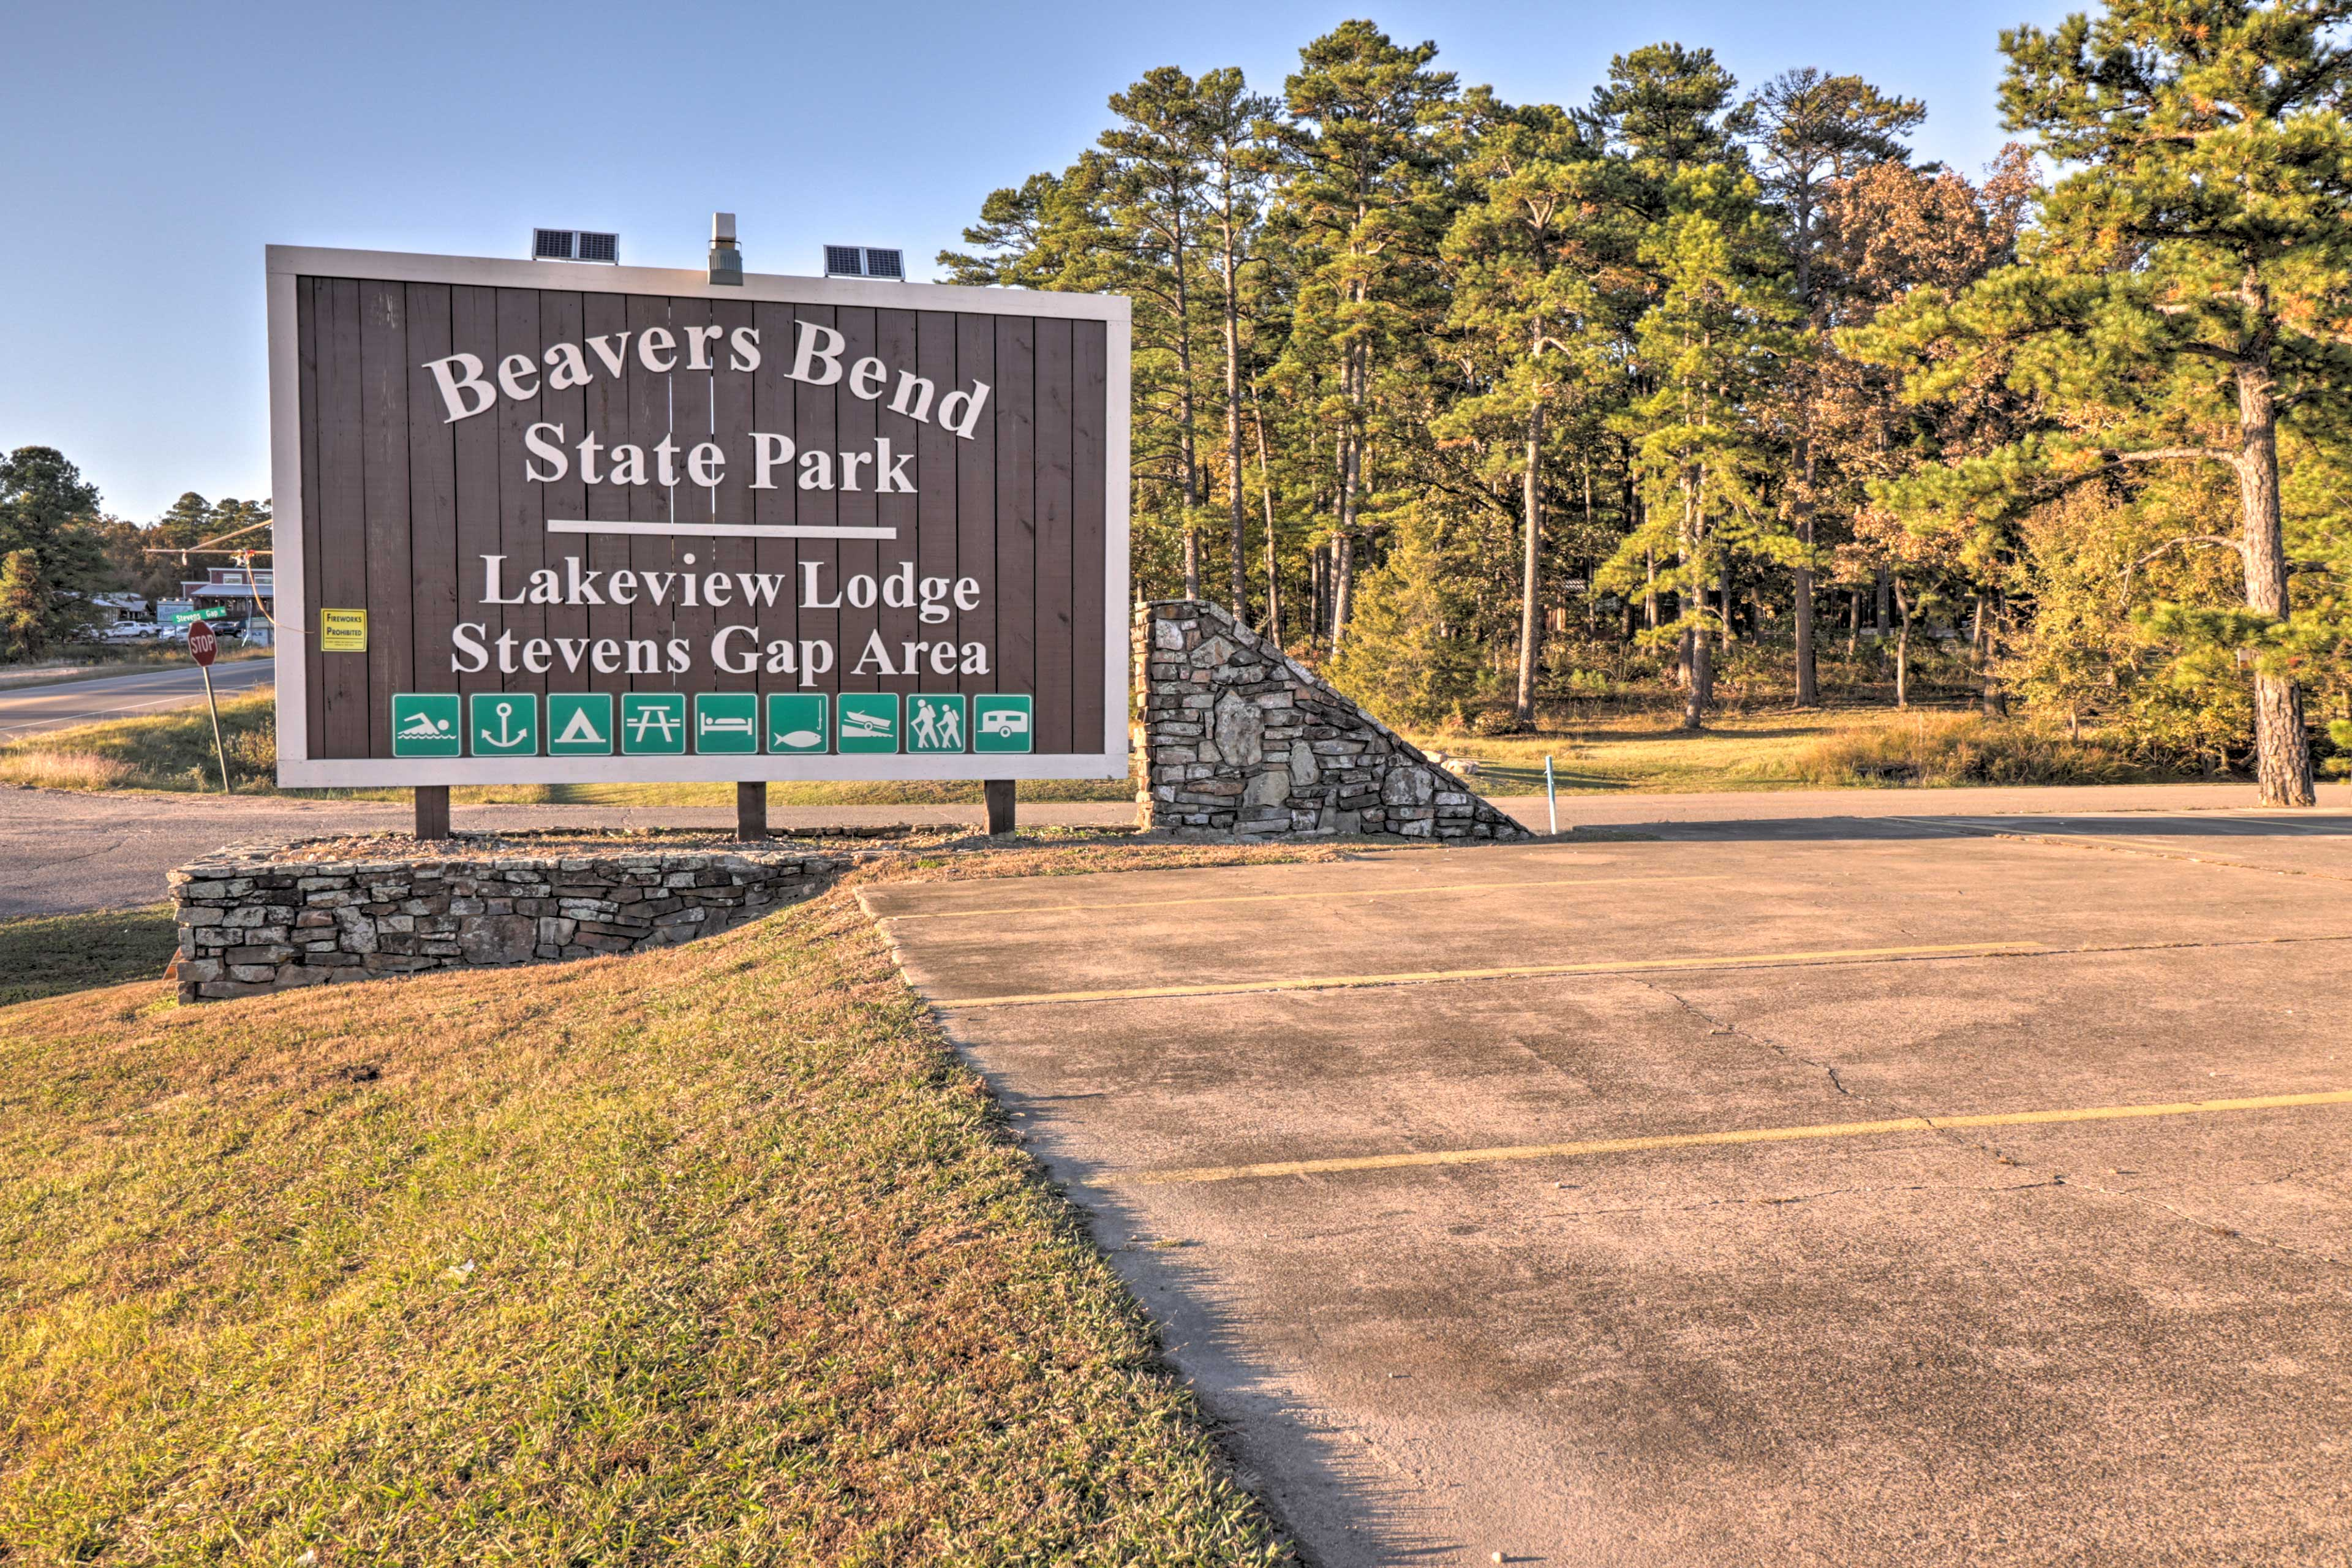 Explore the trails through Beavers Bend State Park.